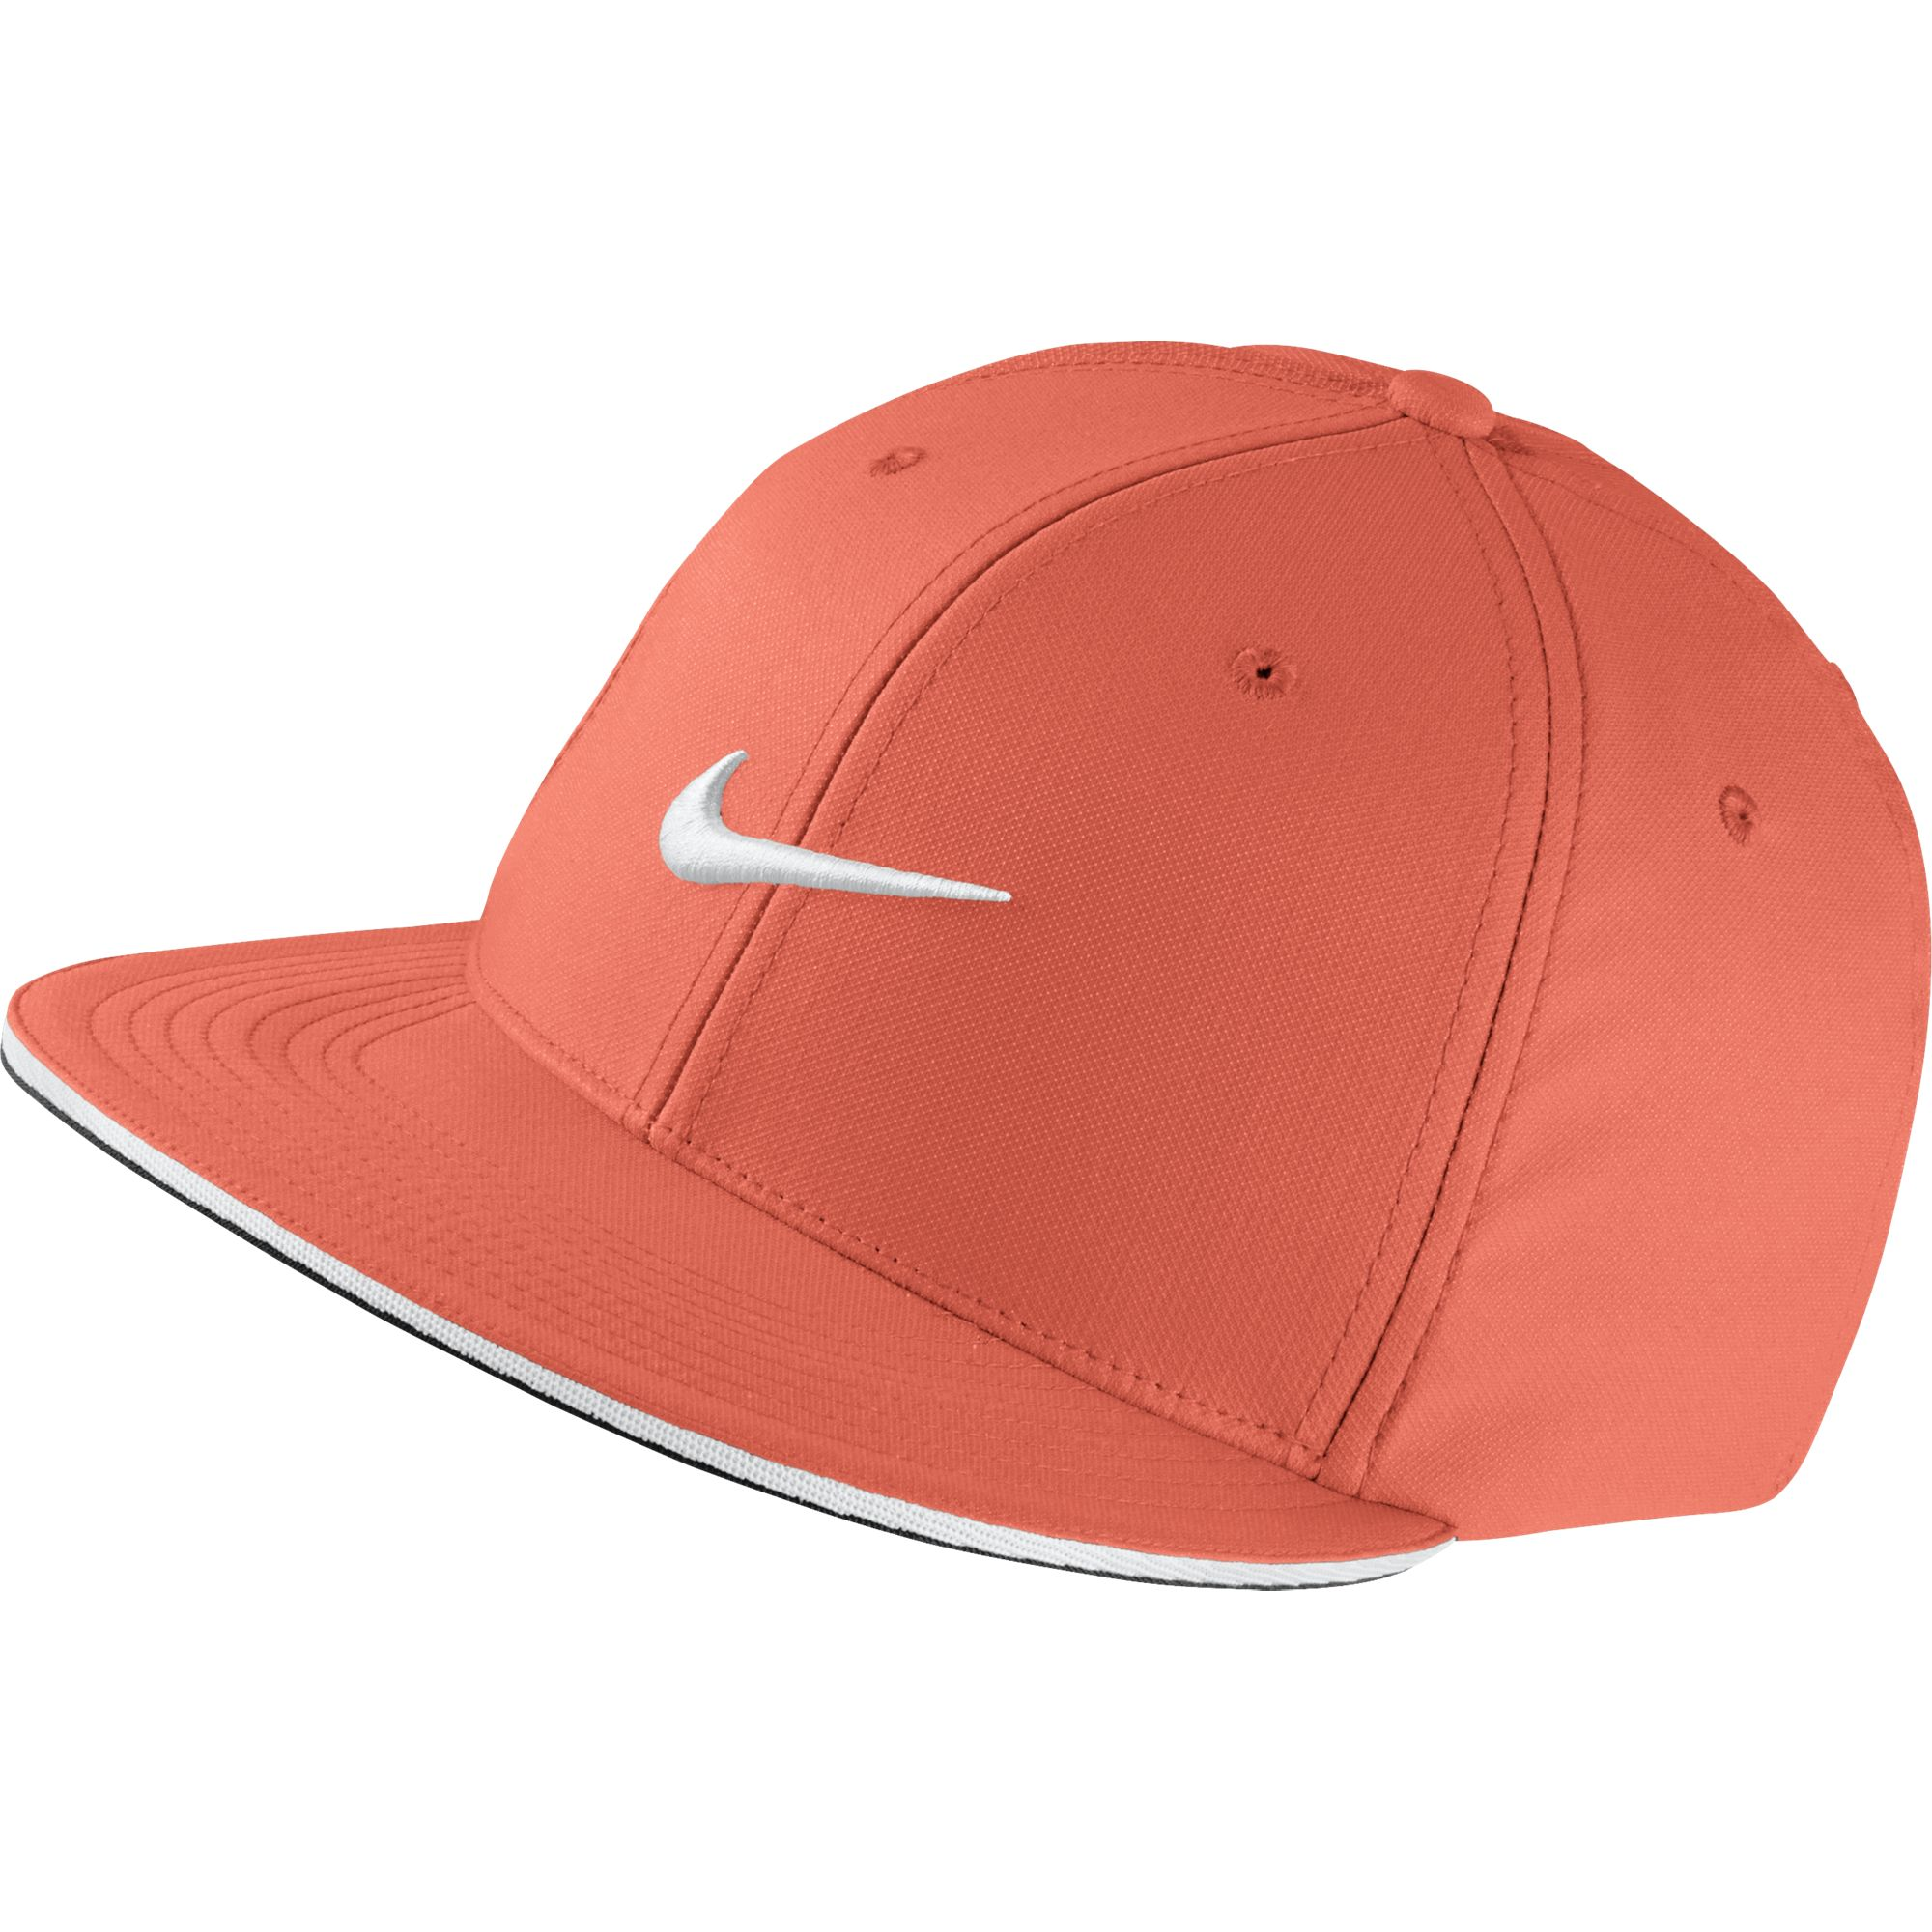 Nike True Tour Fitted Hat